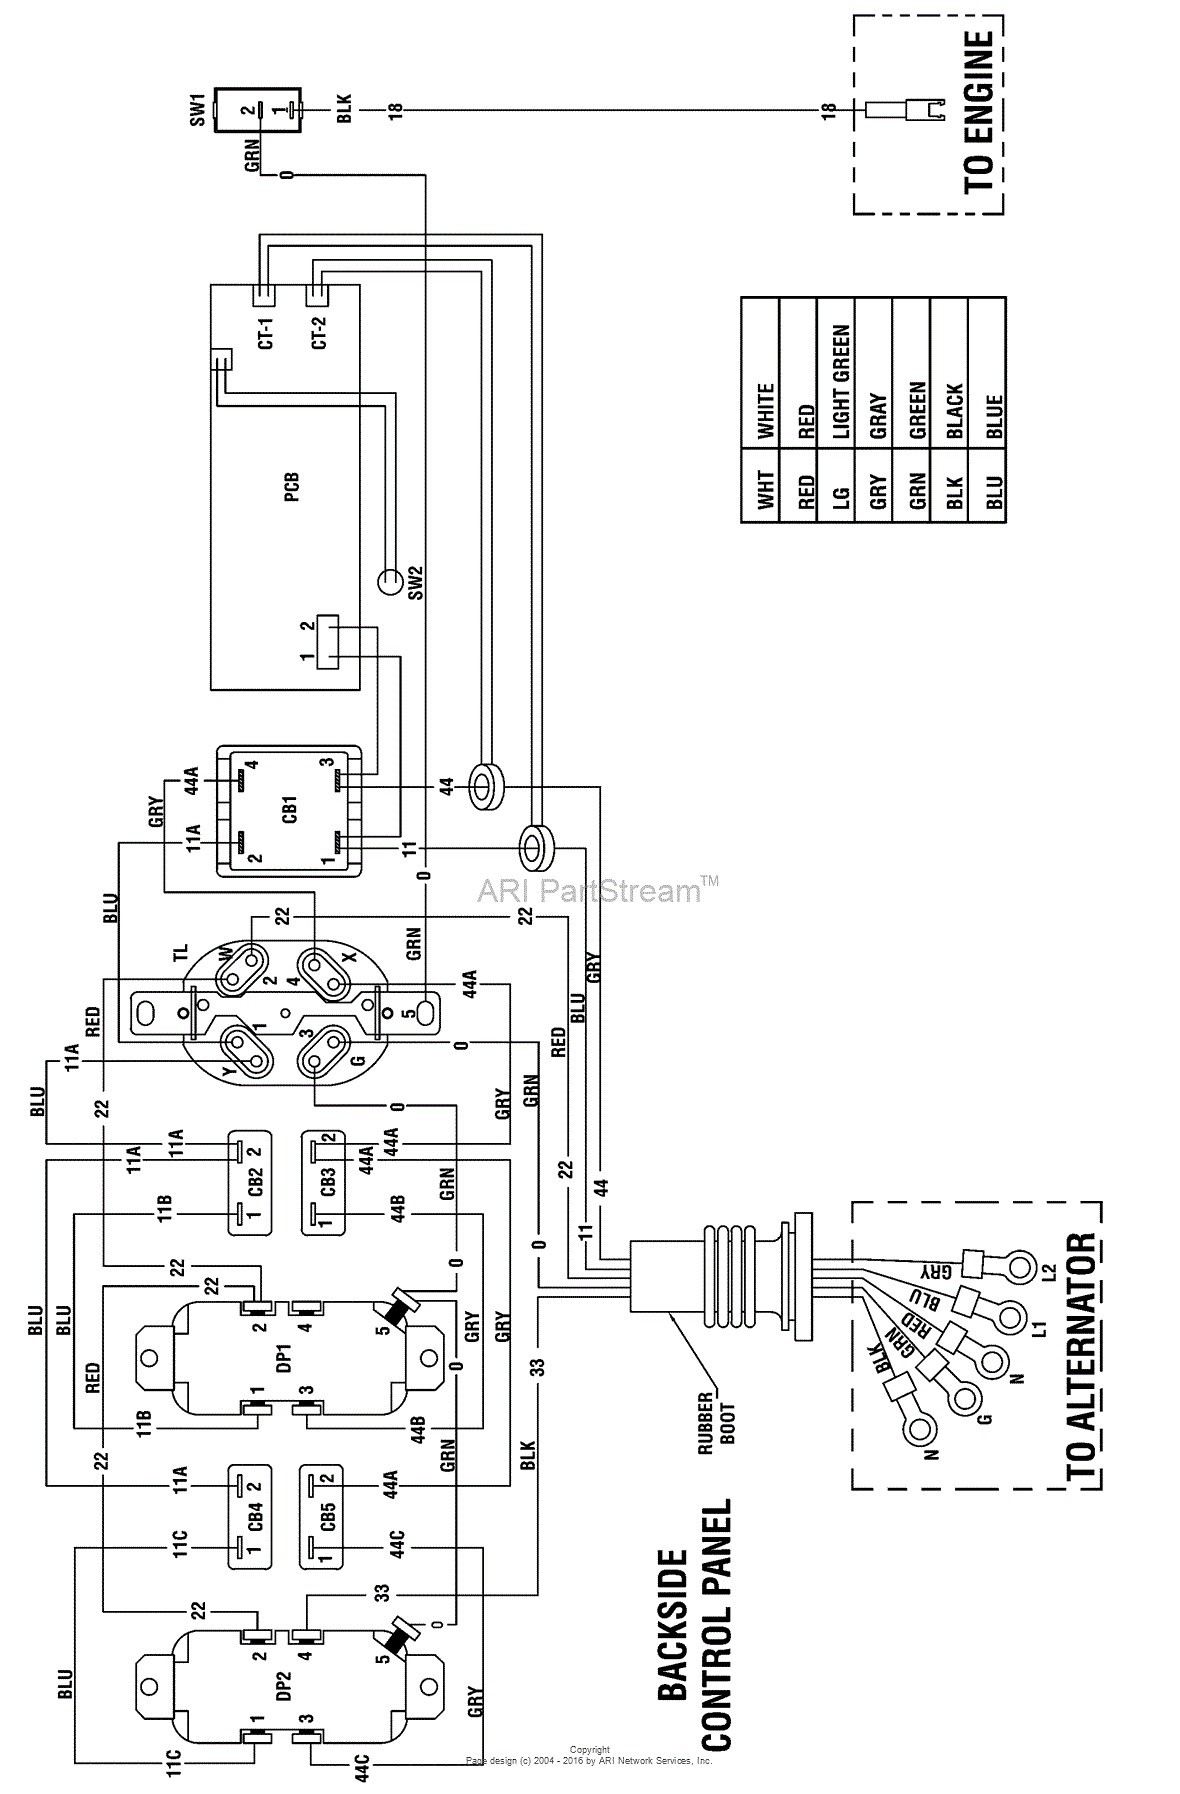 briggs stratton vanguard engine wiring diagram wiring diagram briggs and stratton 16 hp engine 23 hp briggs and stratton wiring diagram #10